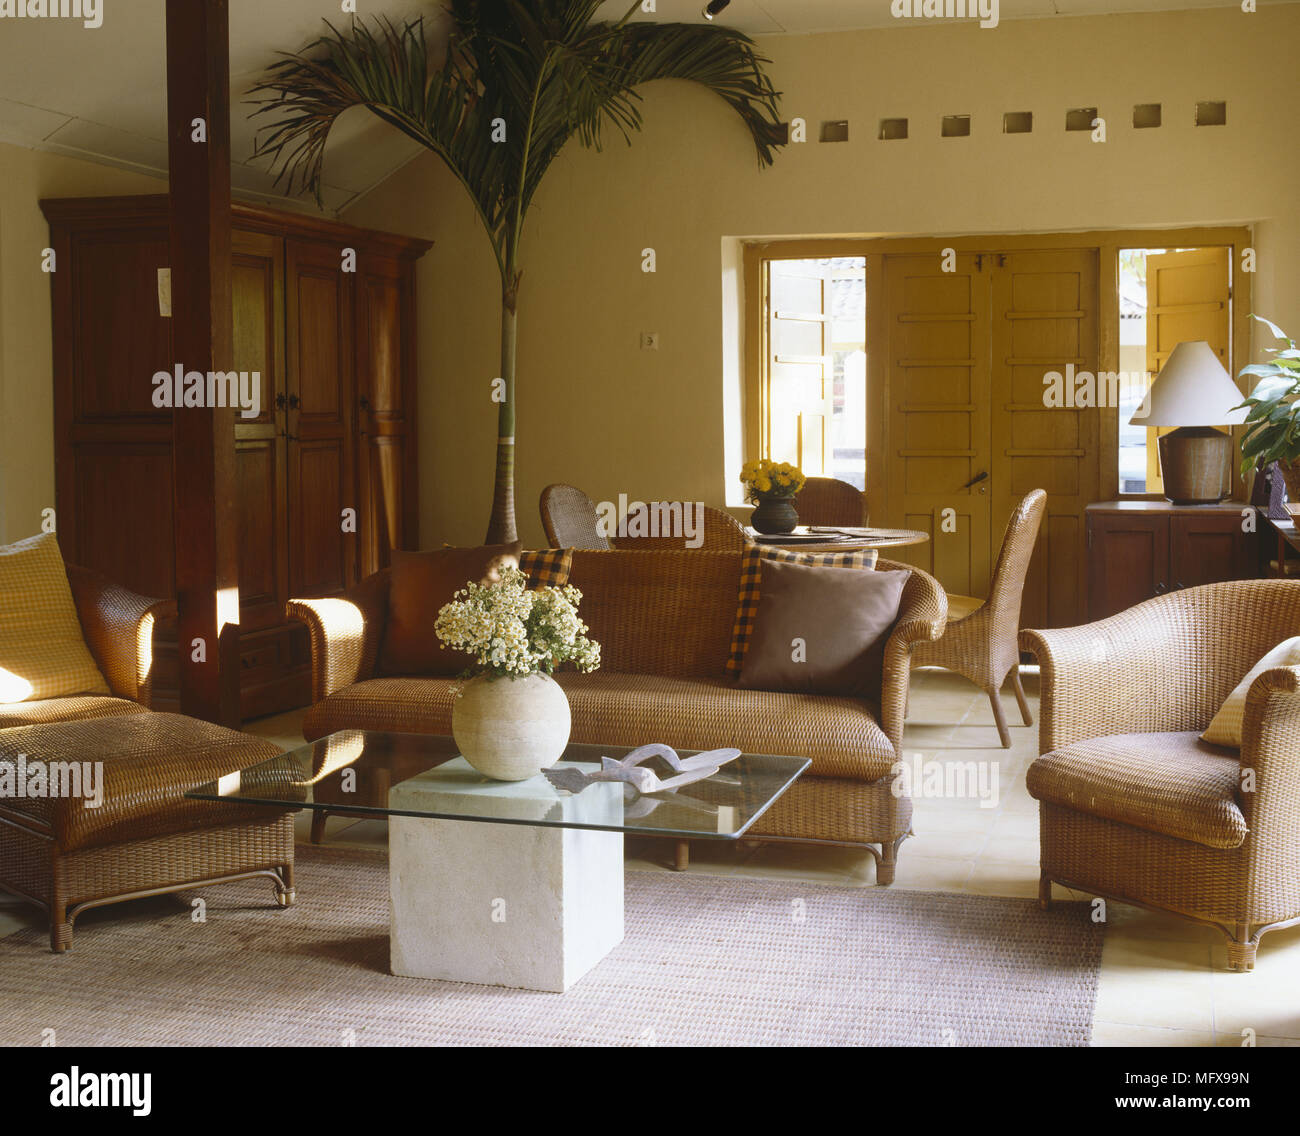 Rattan Furniture Stockfotos & Rattan Furniture Bilder - Alamy